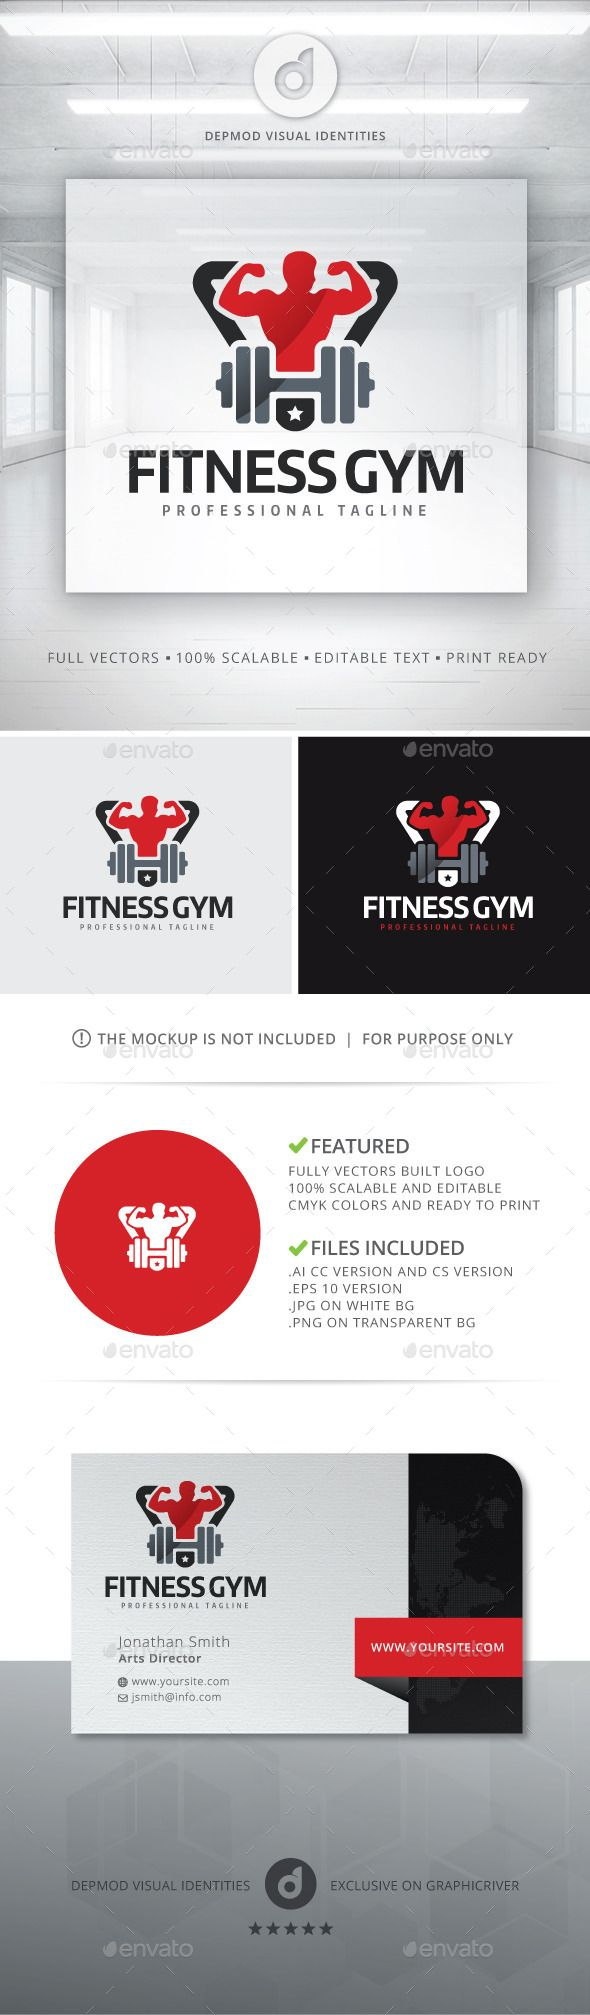 Fitness Gym Logo Template Vector EPS, AI. Download here: http://graphicriver.net/item/fitness-gym-logo/12450996?ref=ksioks